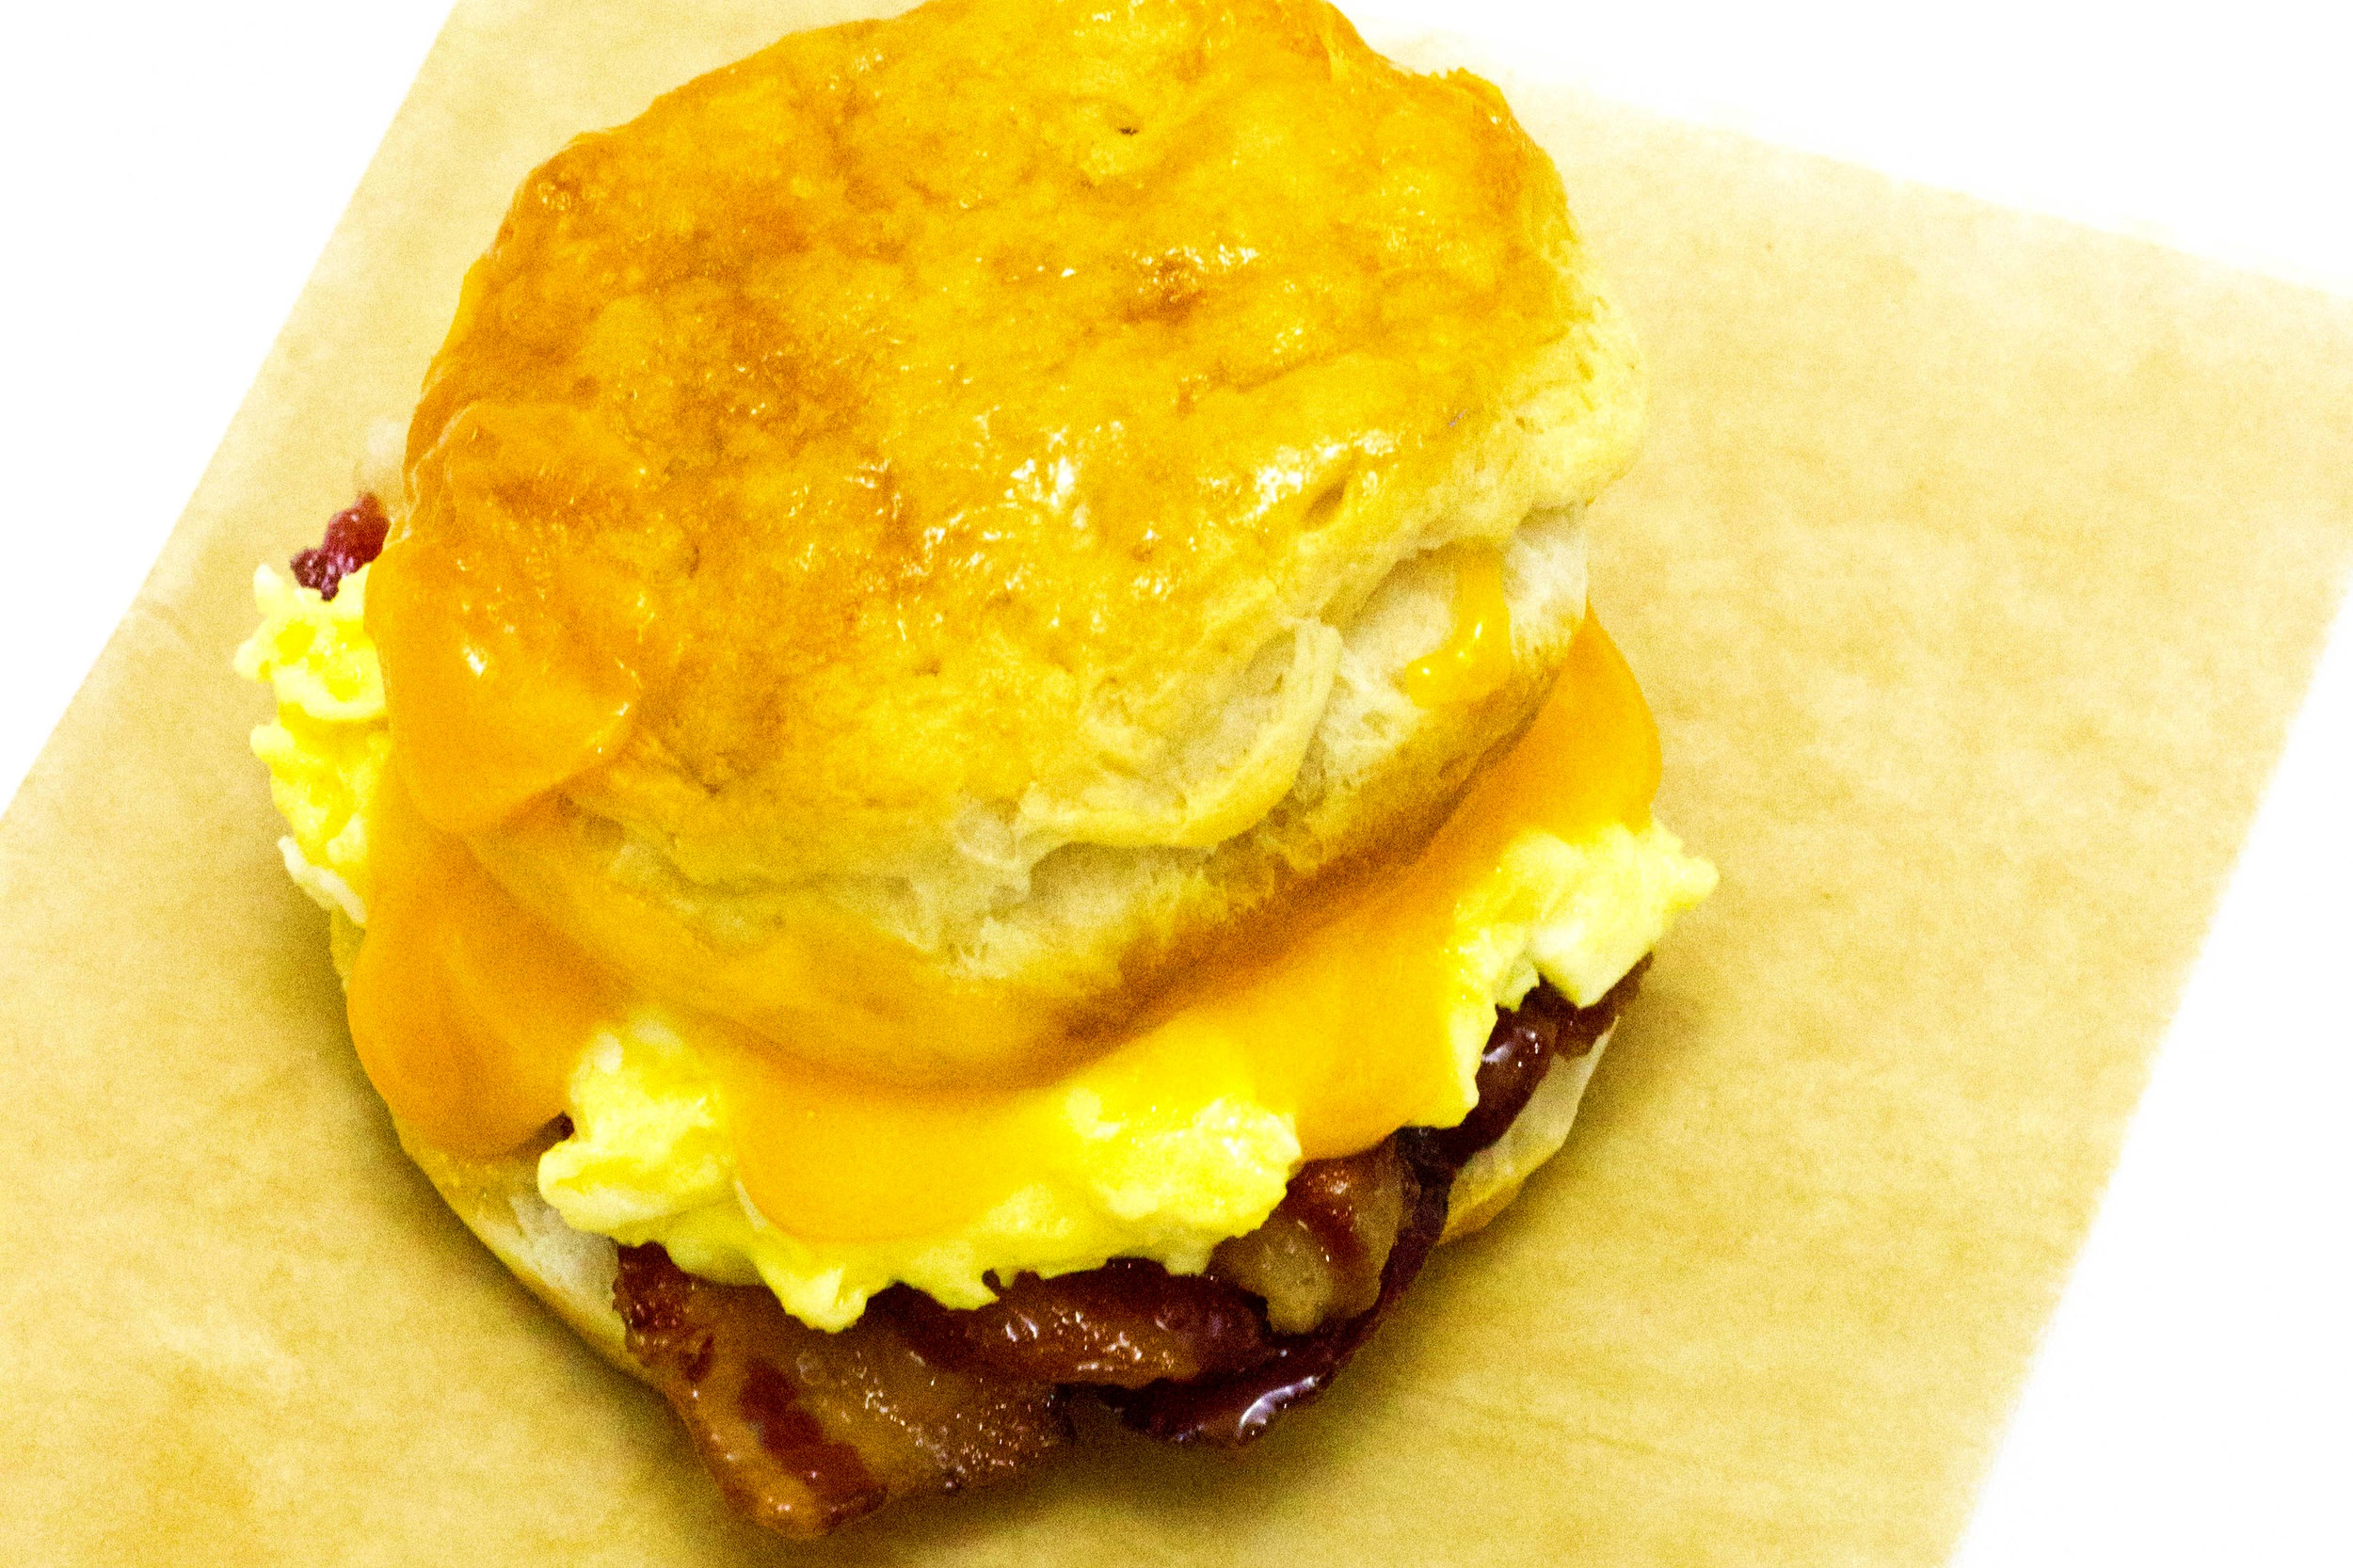 Biscuit Sandwich - Homemade biscuit topped with bacon, cheddar, herb seasoned eggs and homemade chipotle aioli or jalapeno aioli